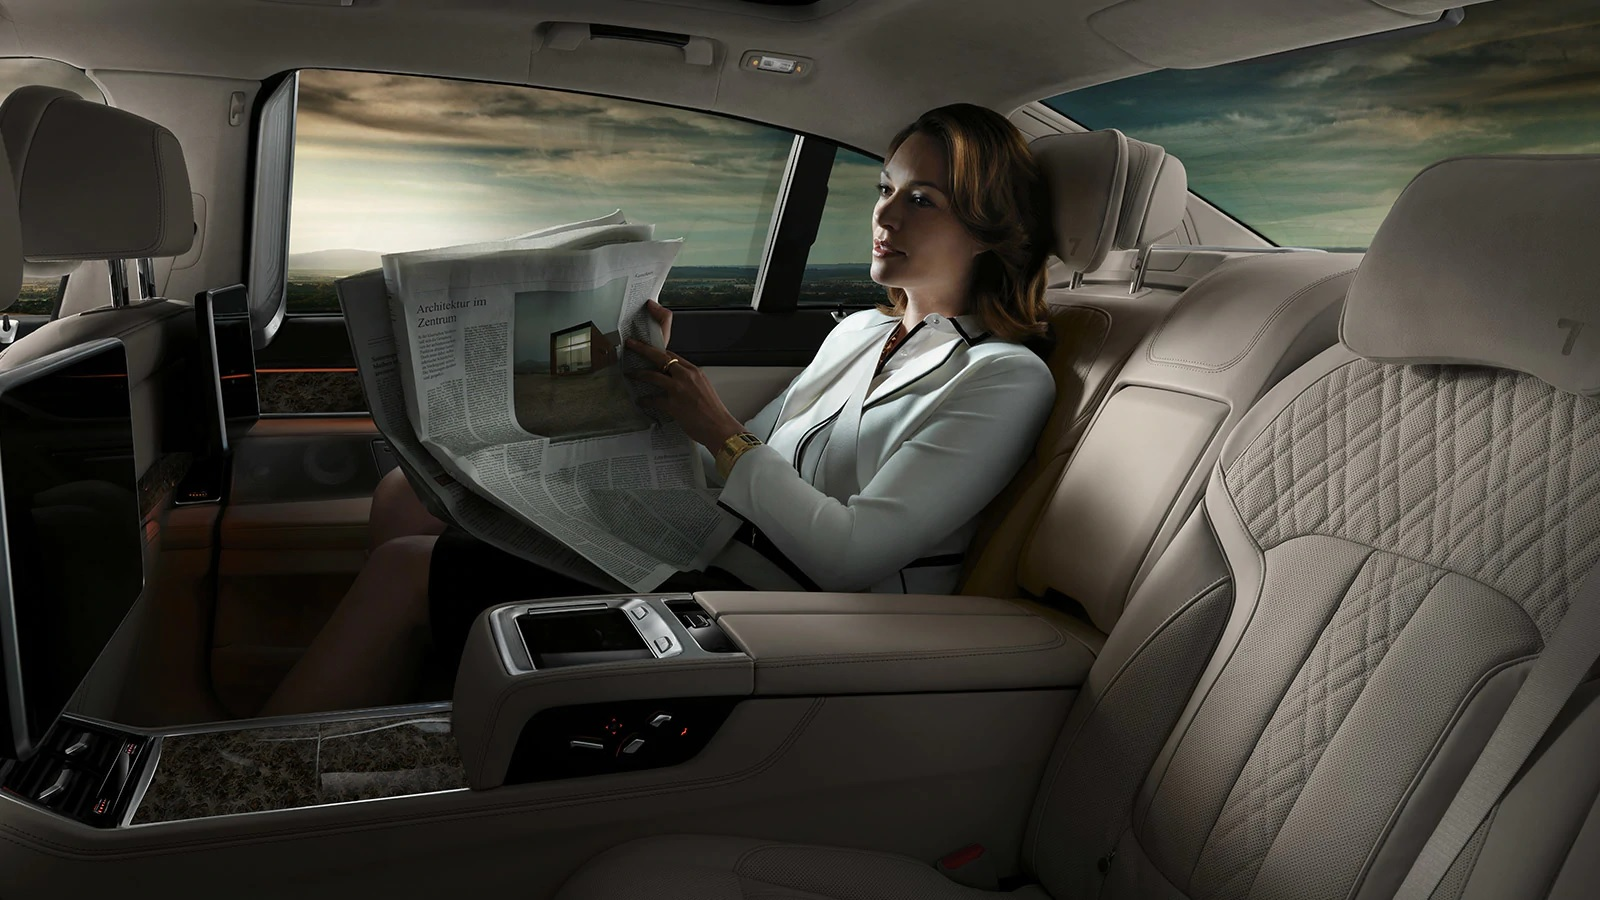 Enjoy Optimum Comfort During Any Drive in the 7 Series!